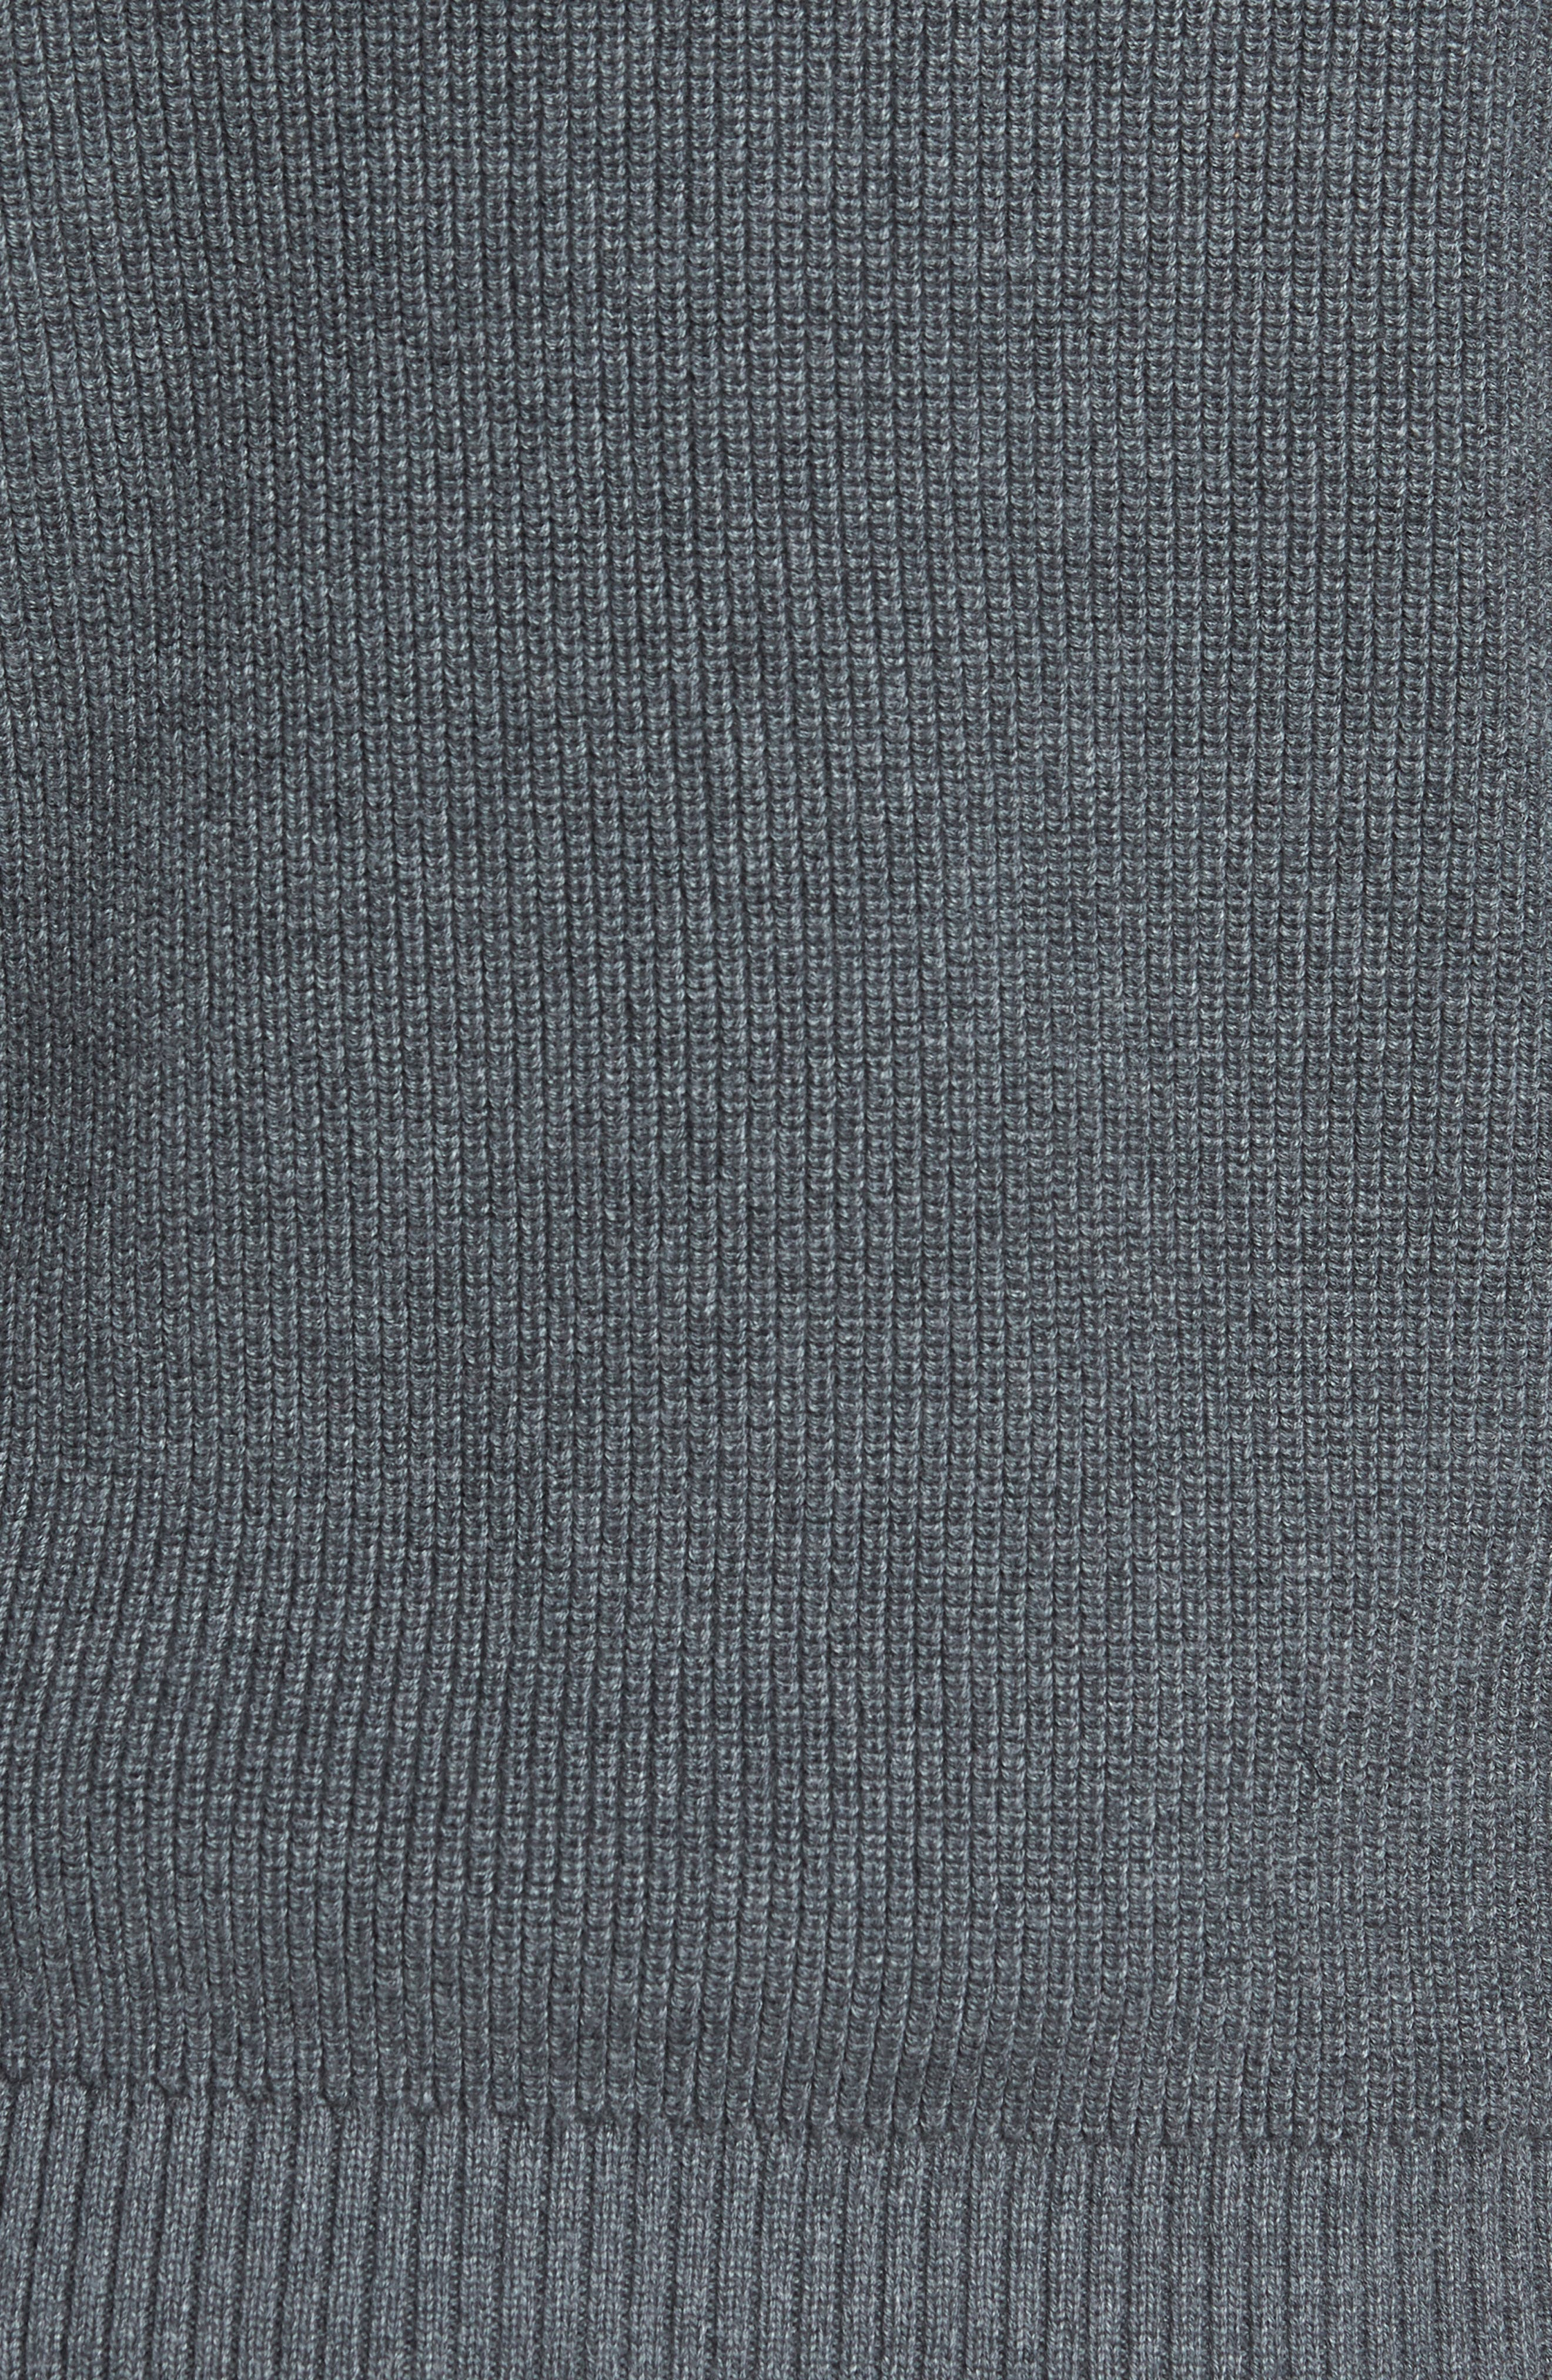 Ribbed Quarter Zip Sweater,                             Alternate thumbnail 5, color,                             GREY CASTLEROCK